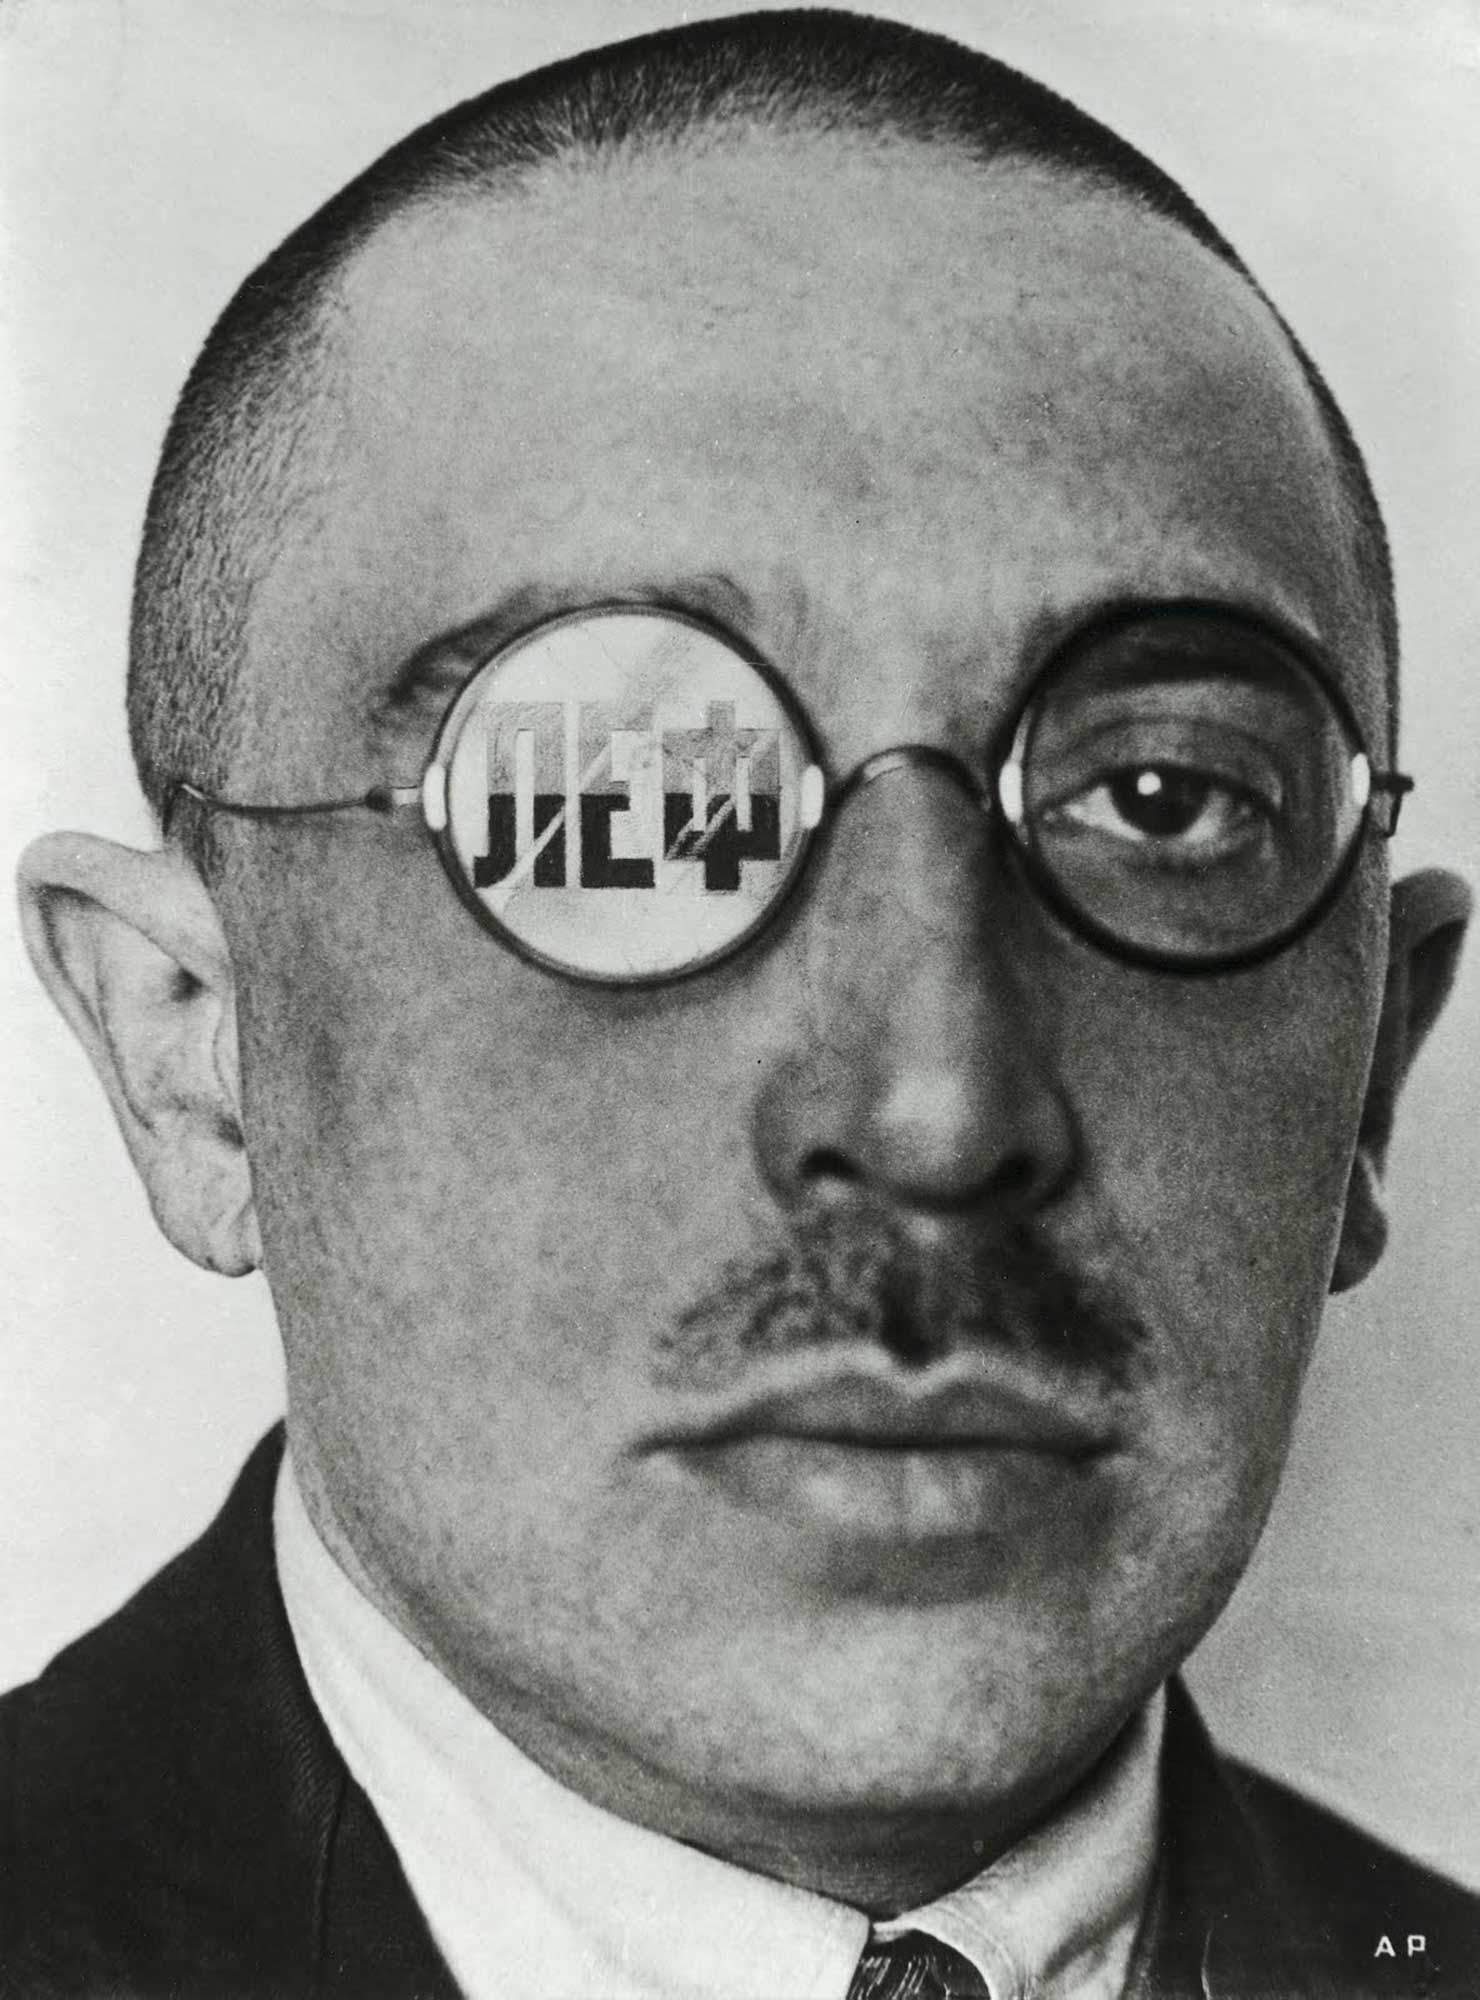 Aleksandr-Rodchenko-Photo_004